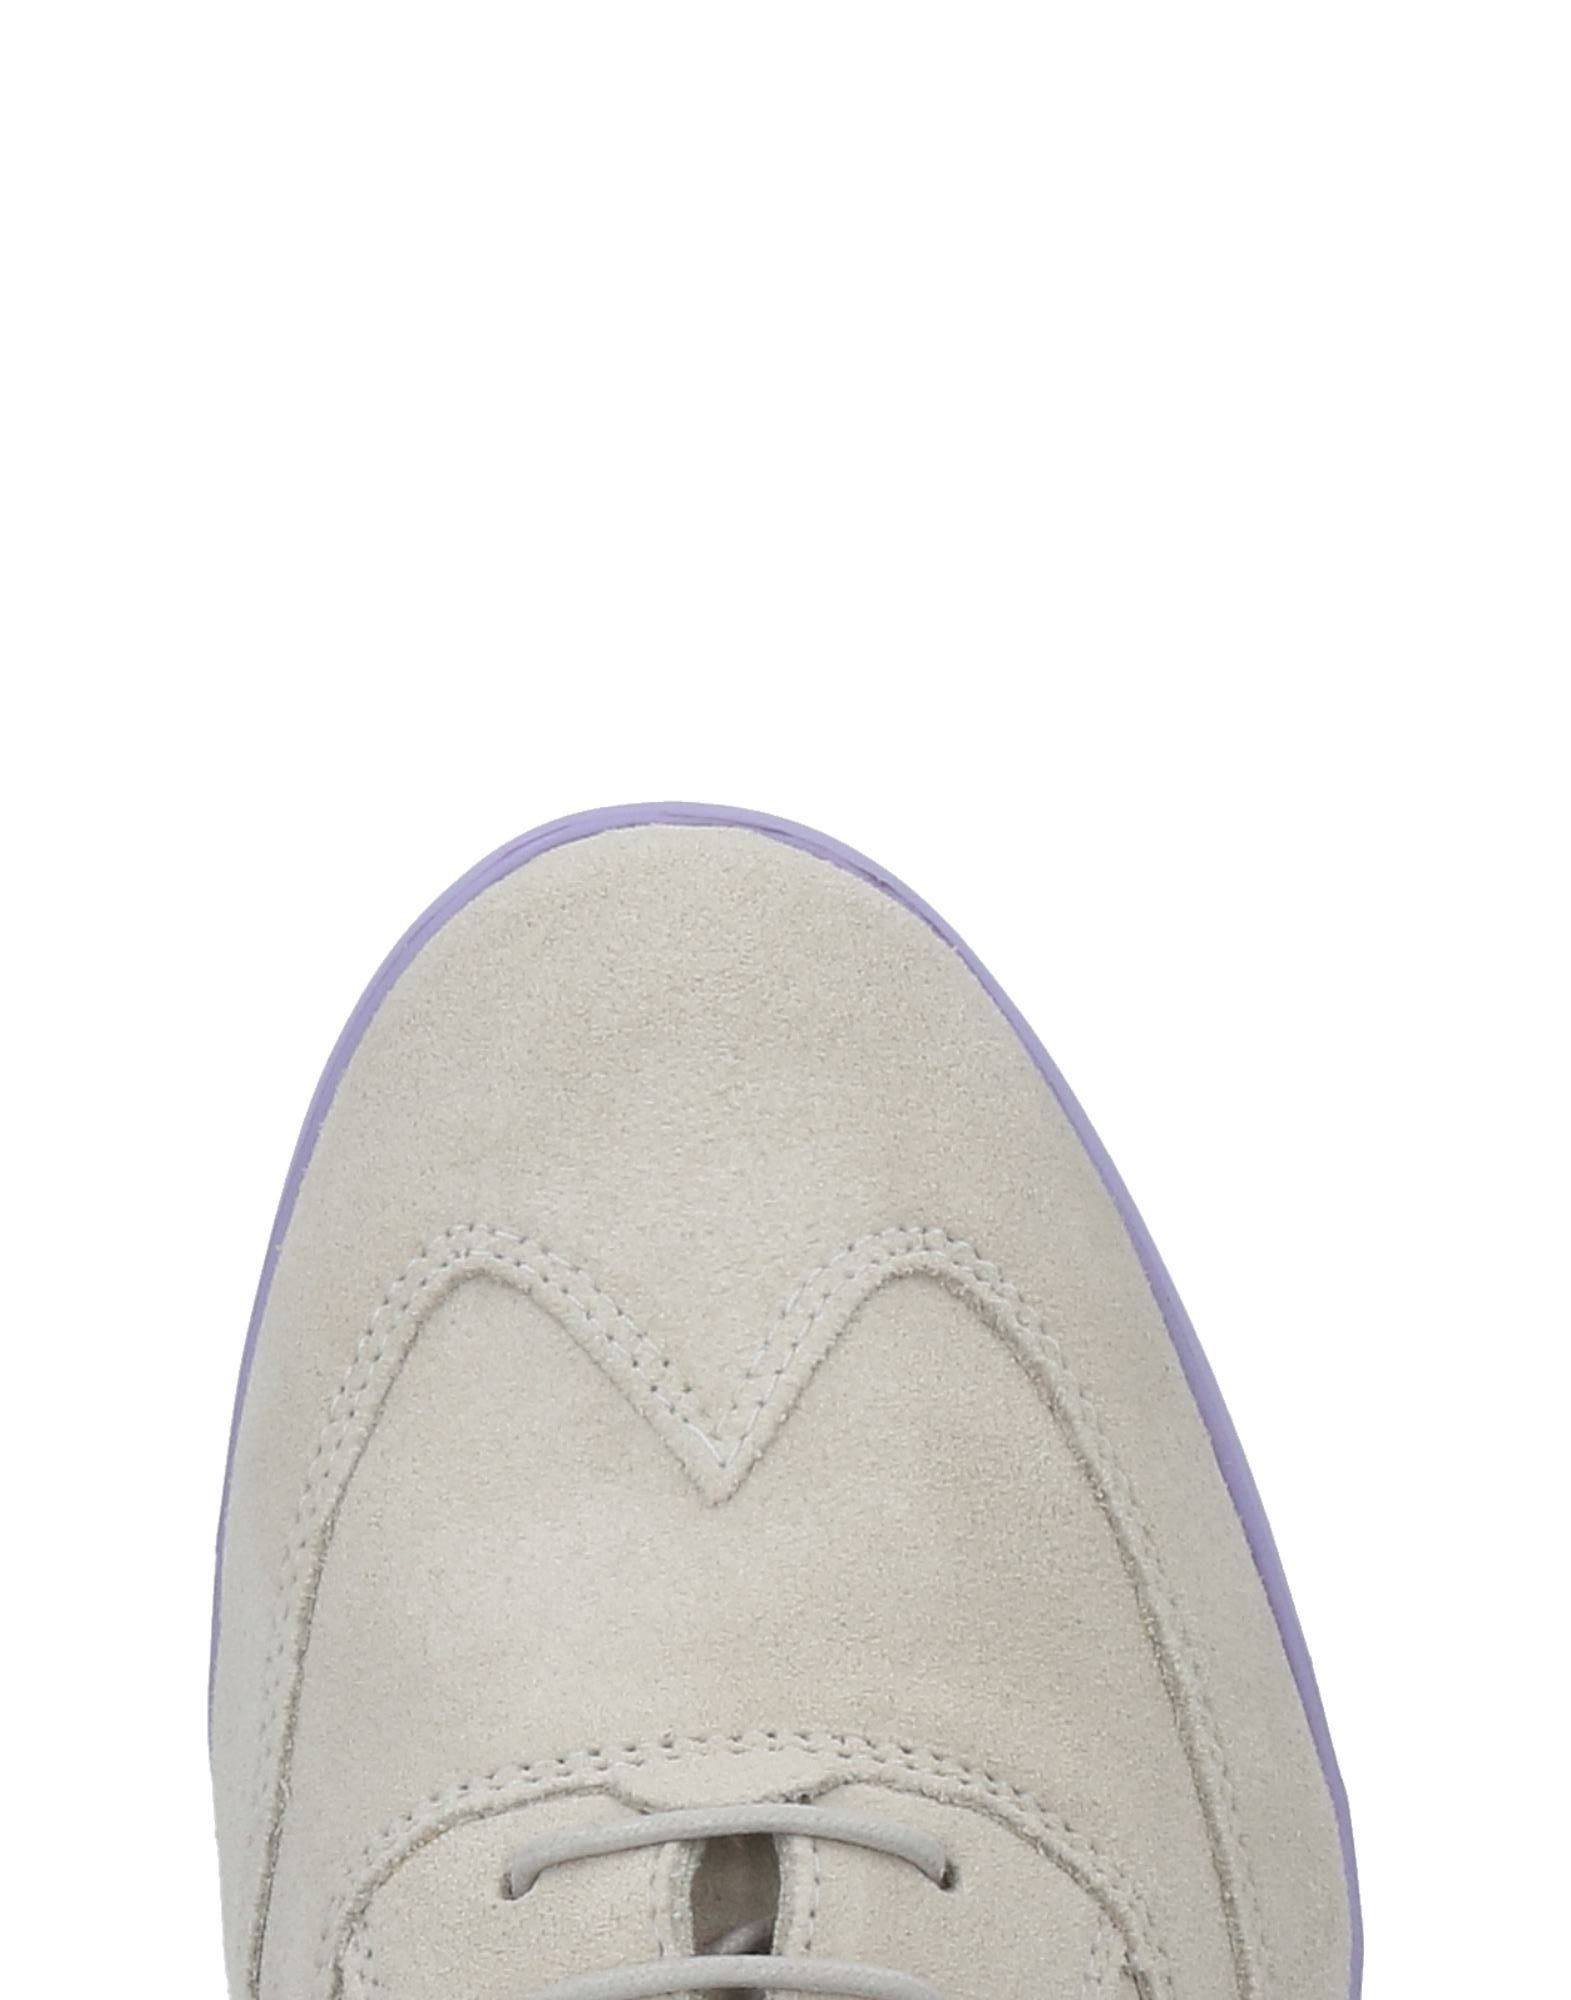 Sneakers Rockport Femme - Sneakers Rockport sur